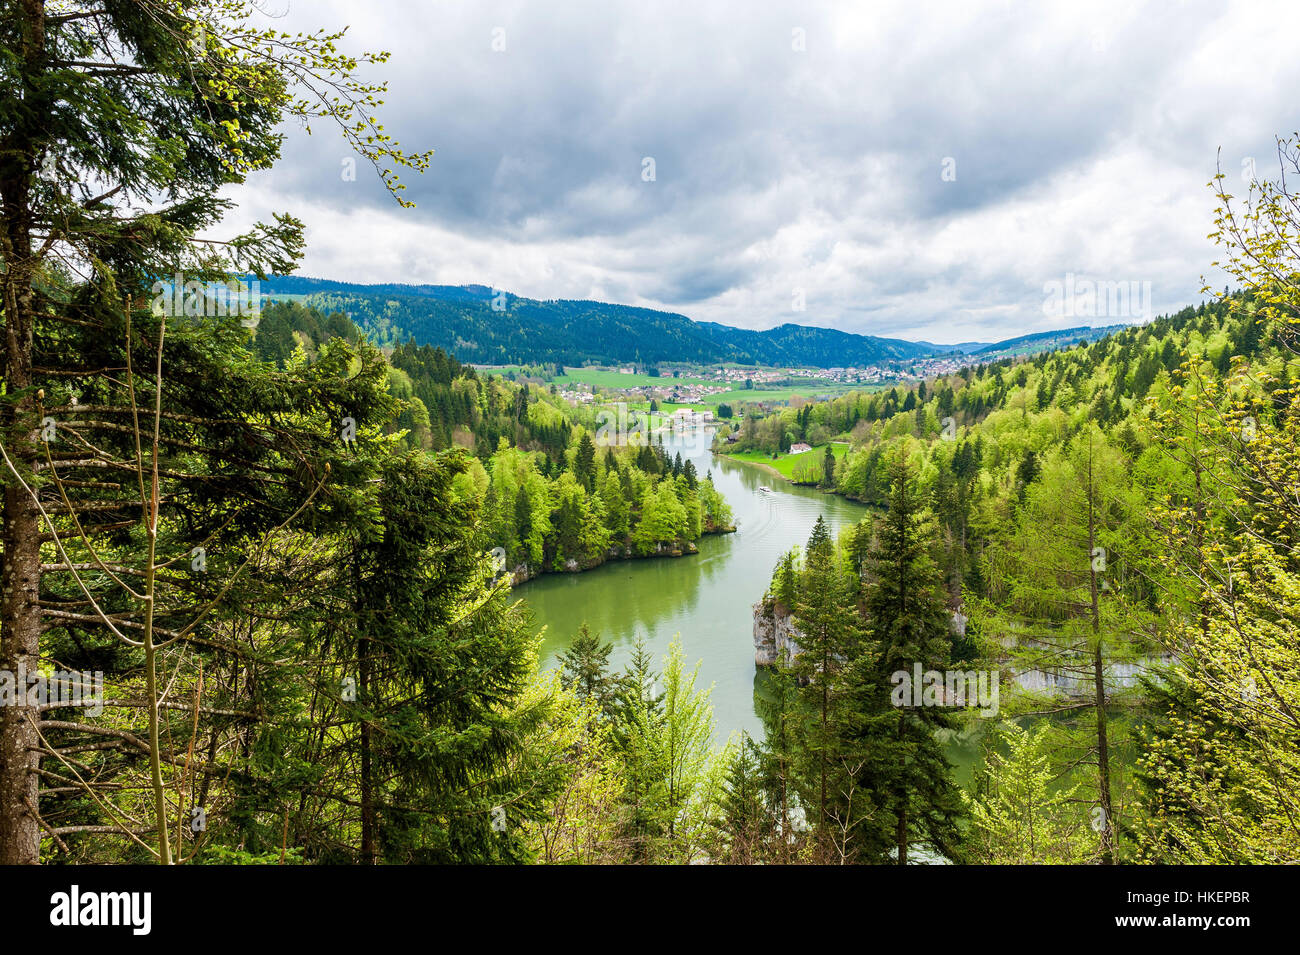 The Doubs River and Valley on the Swiss side, upstream from the Saut du Doubs Waterfall in the town of Les Brenets - Stock Image